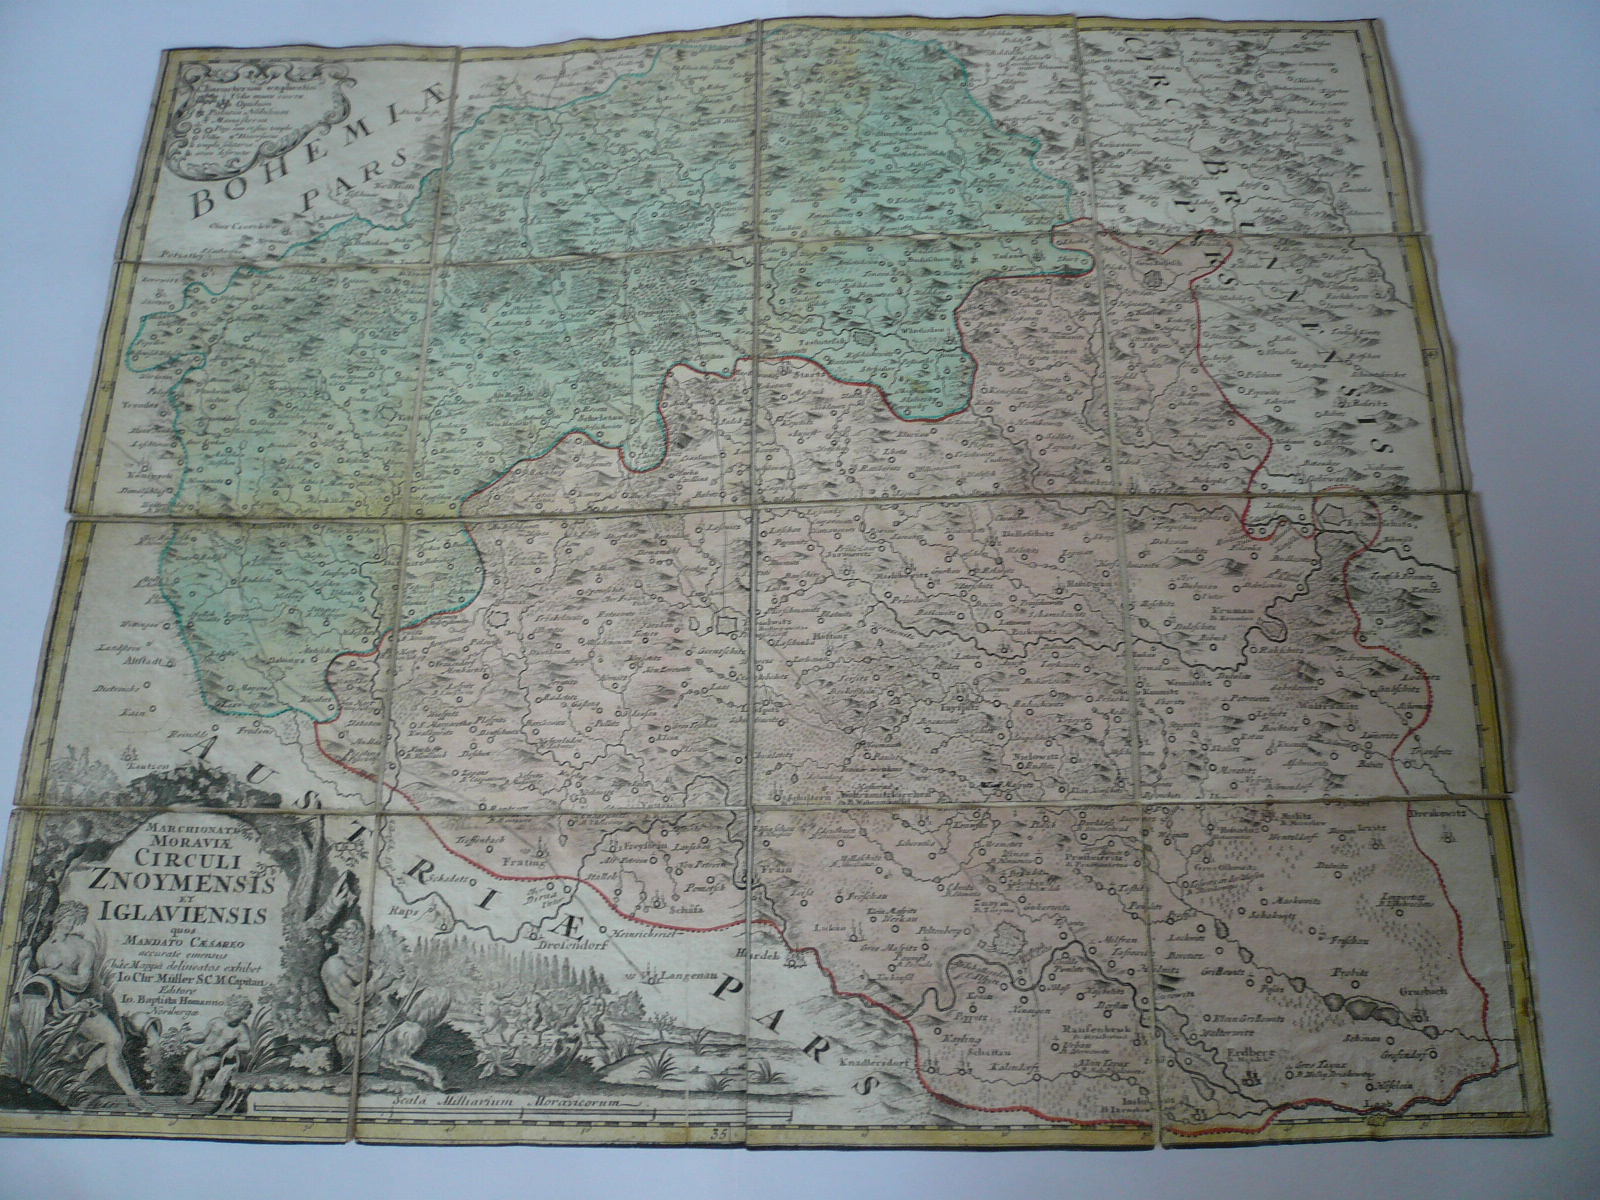 Znoymensis/Iglaueinsis,anno 1720, map Homann J.B., old colours C